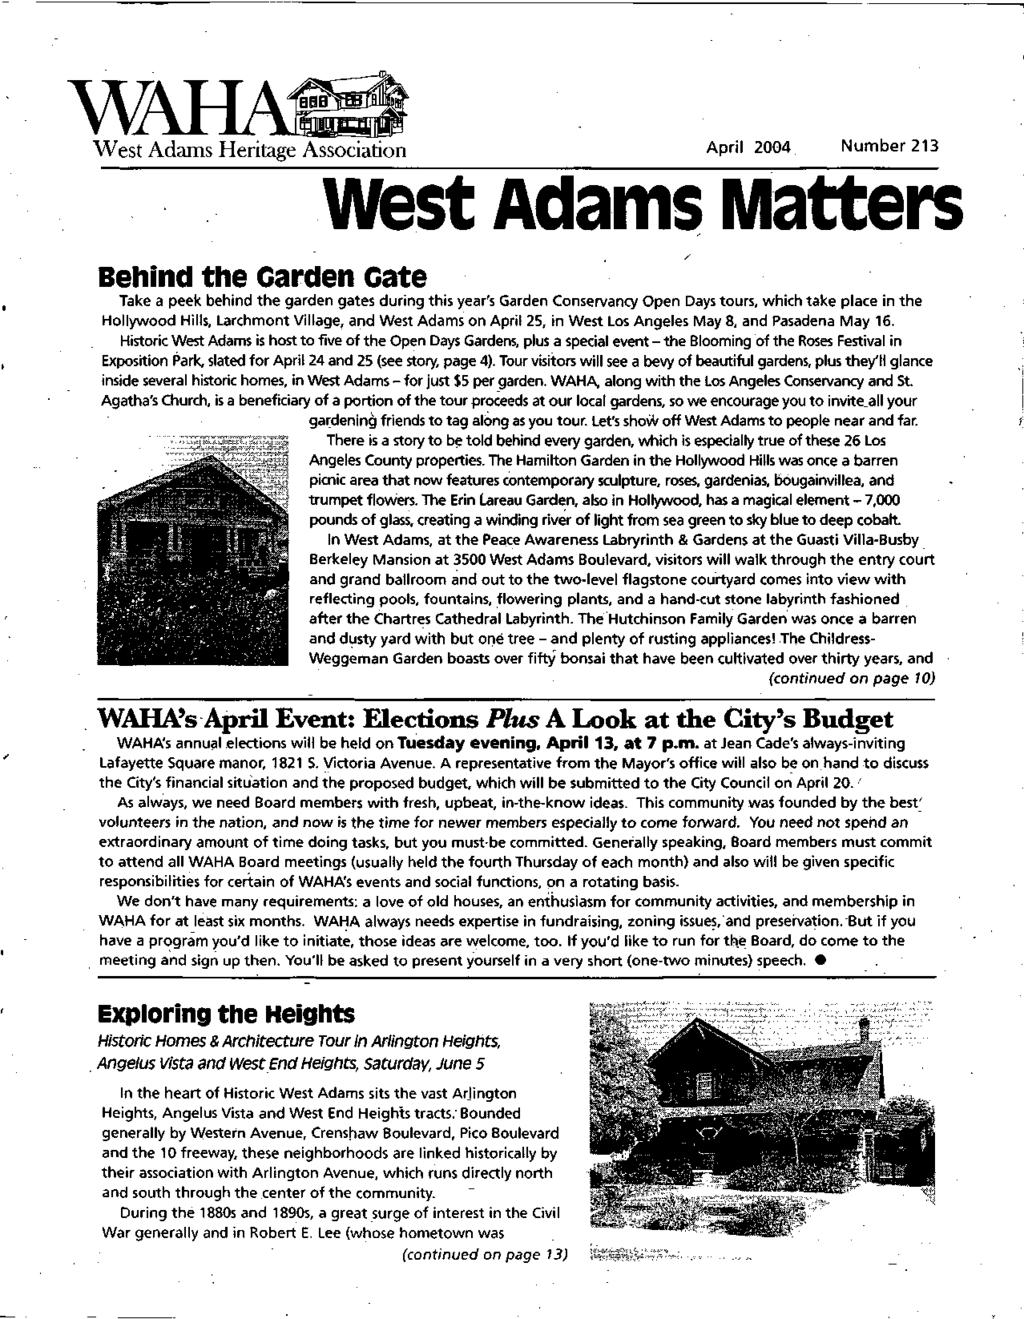 West Adams Heritage Association April 2004 Number 213 West Adams Matters Behind the Garden Gate Take a peek behind the garden gates during this year's Garden Conservancy Open Days tours, which take